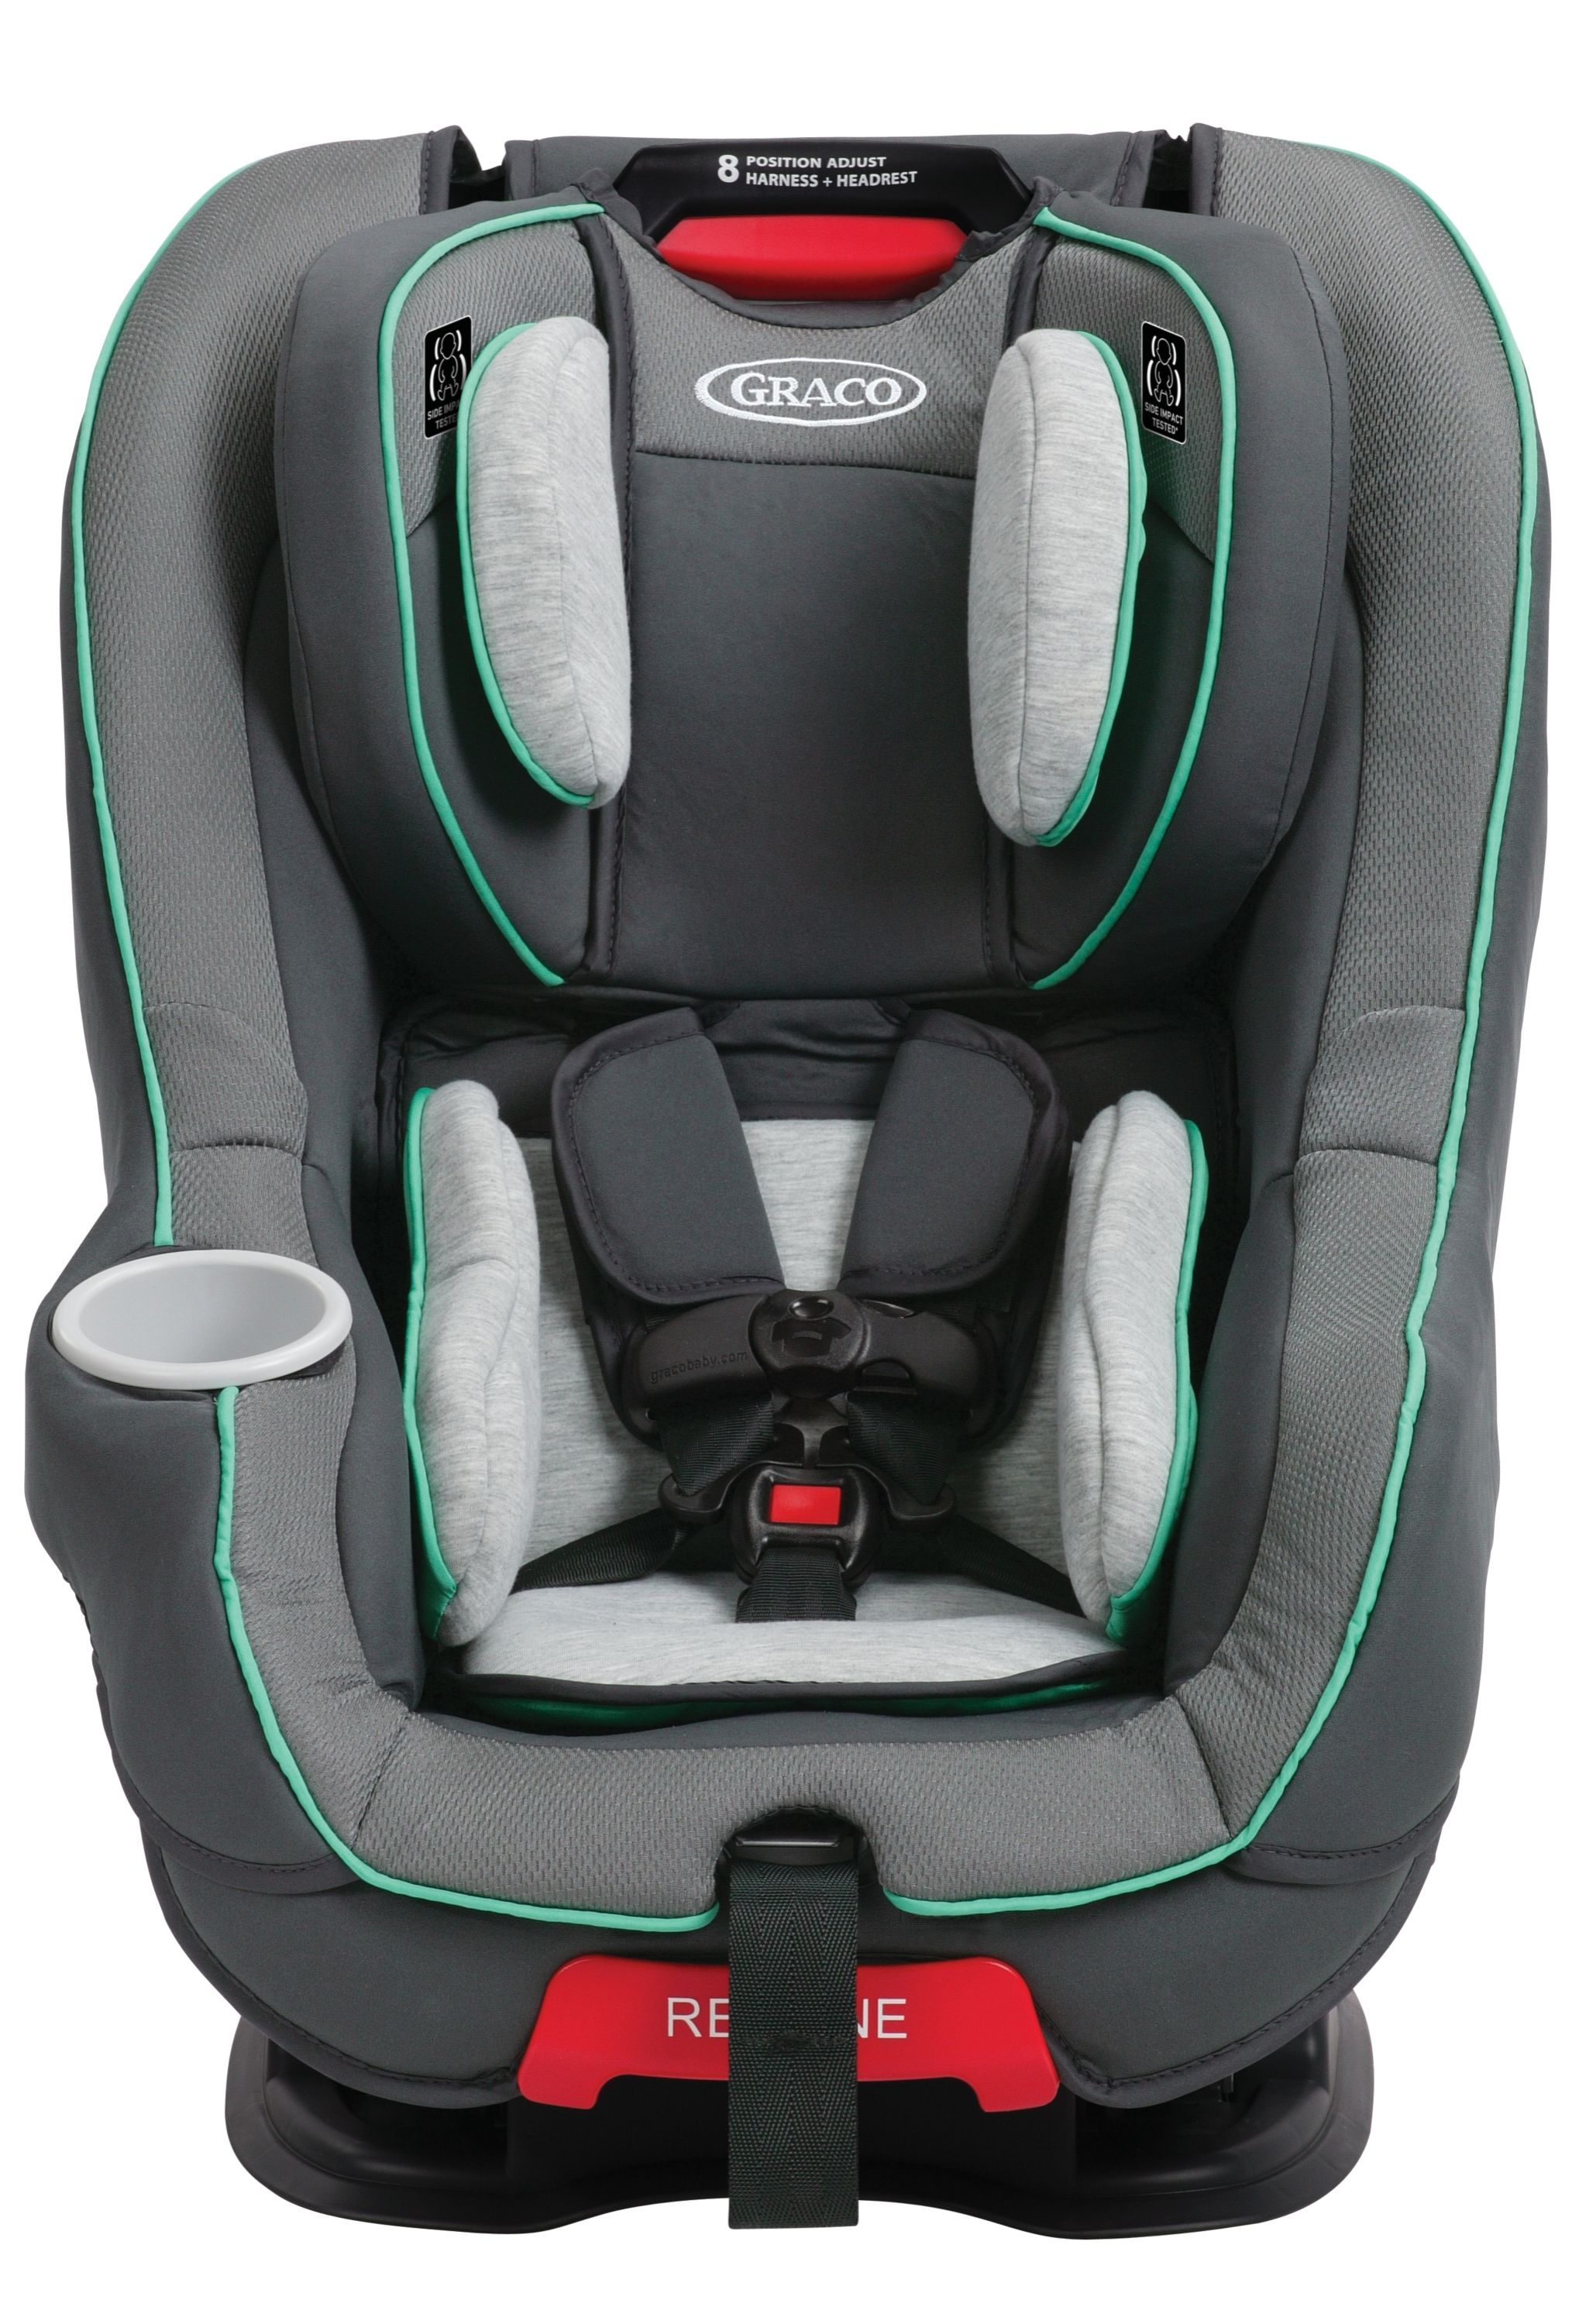 Graco's My Size 65 Convertible Car Seat in Isaac easily